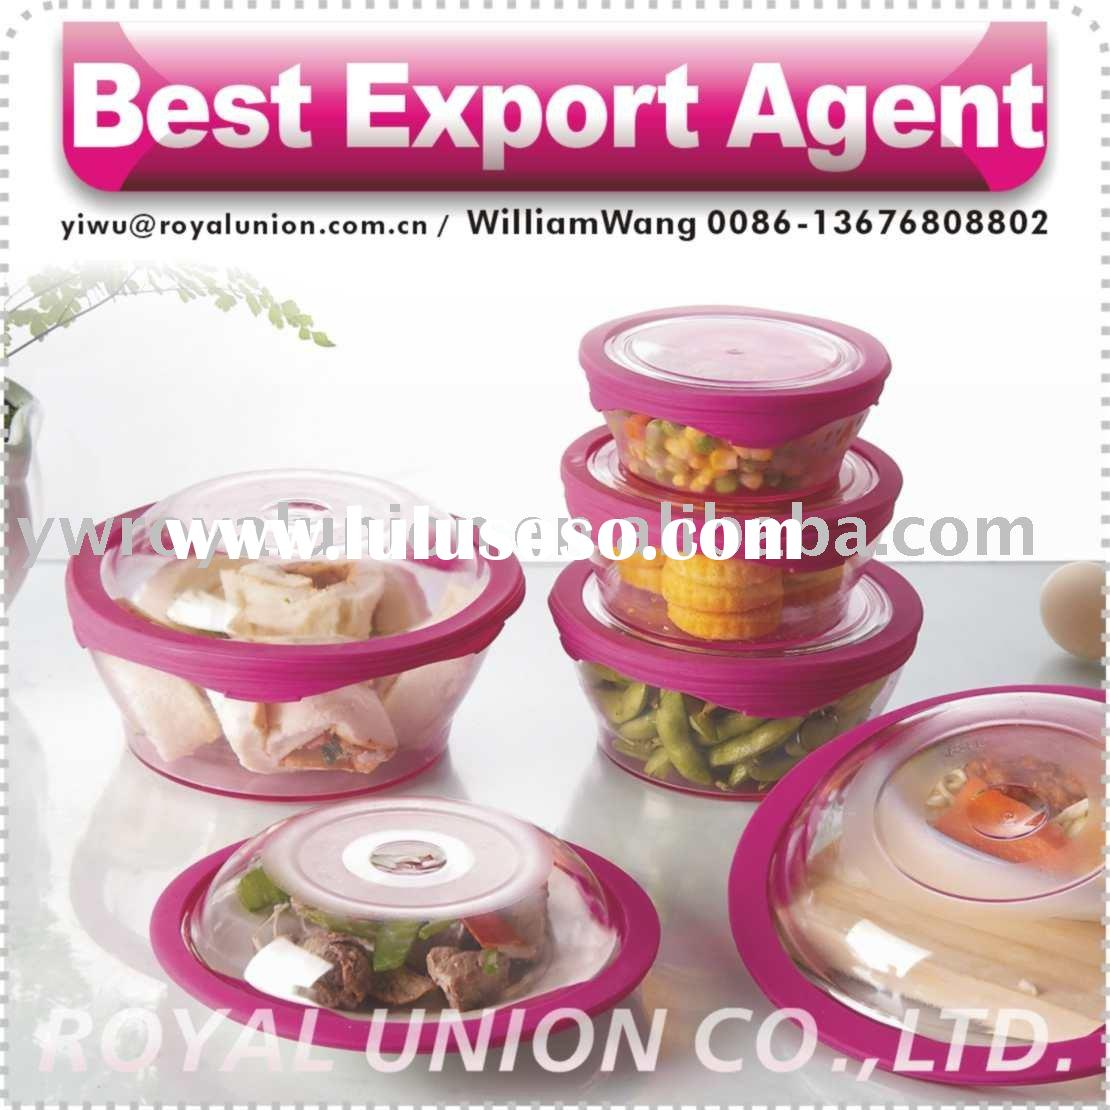 Your best agent in yiwu china with best service